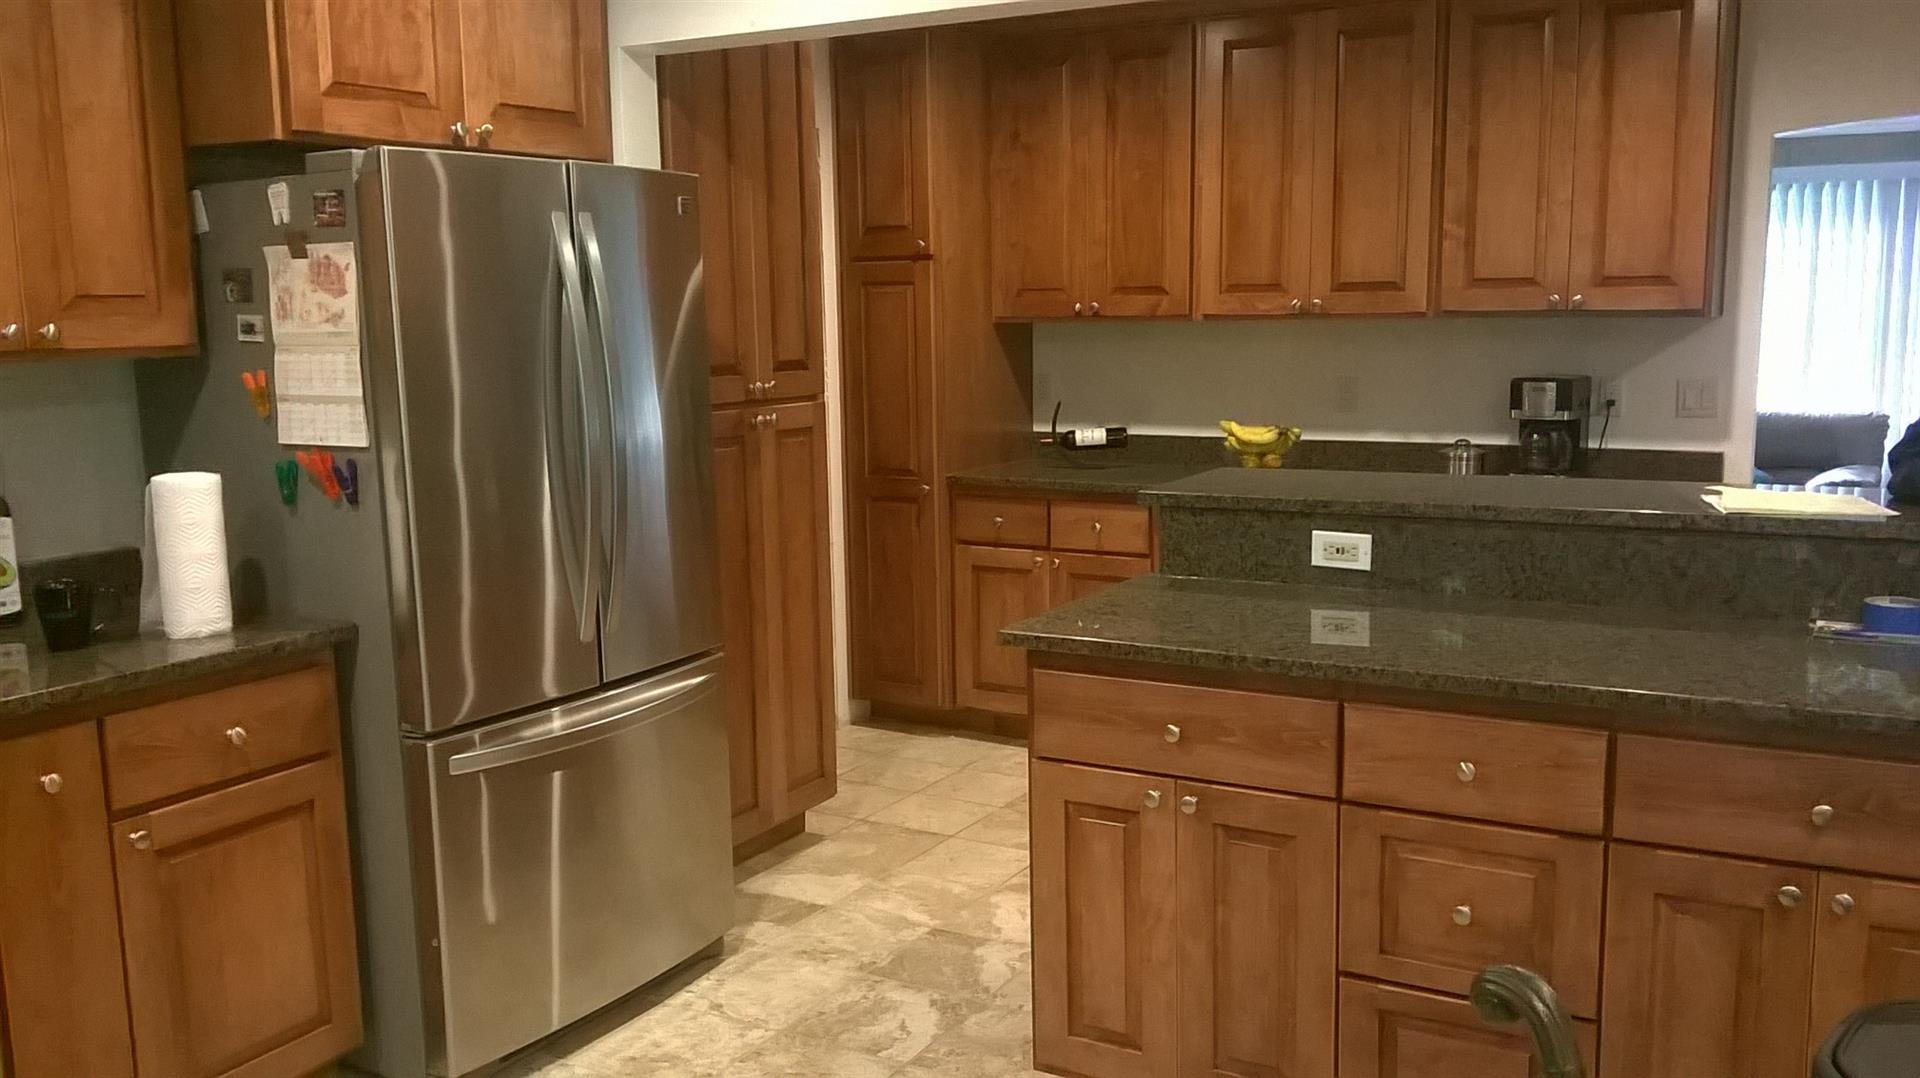 Whatever Your Style, Pineda Custom Kitchen Cabinets Can Turn The Heart Of  Your Home Into A Showpiece. Each Kitchen Combines Precision Craftsmanship,  ...